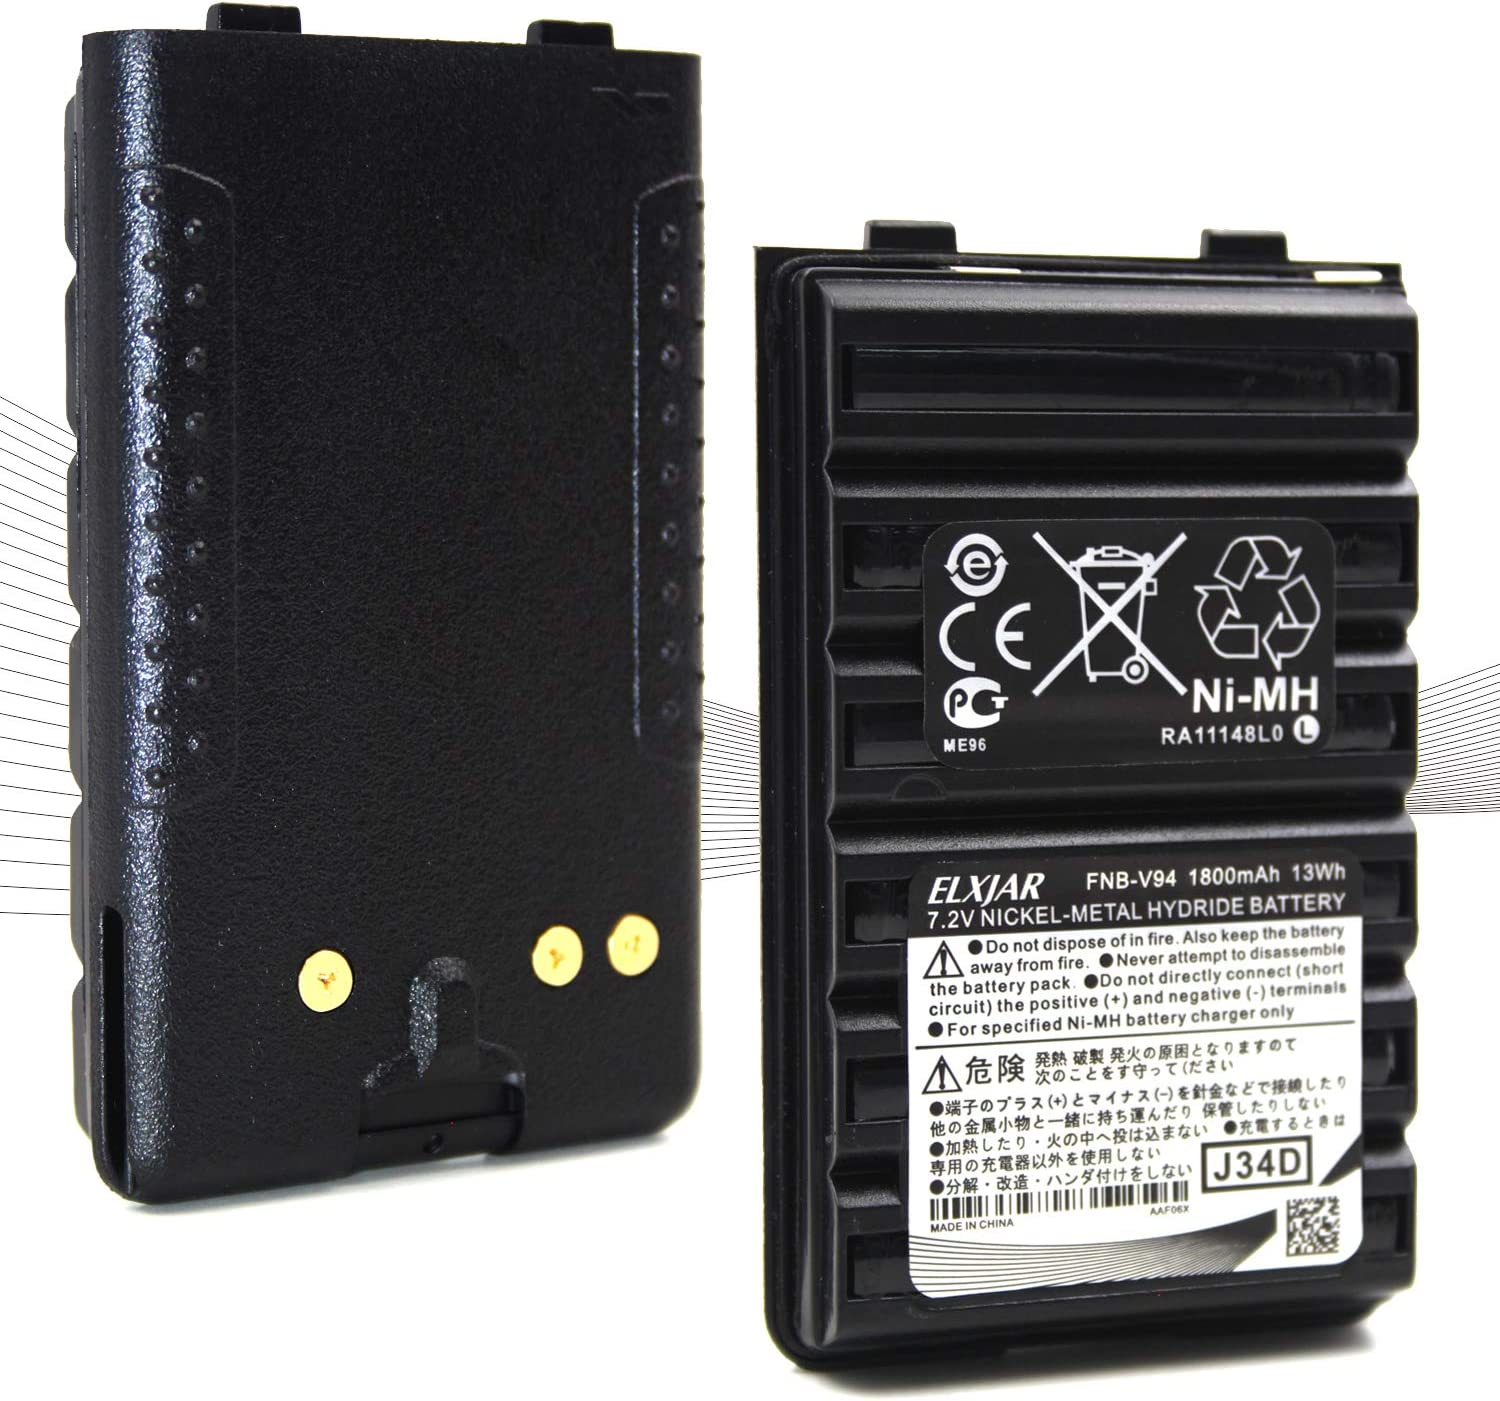 2-Pack 7.2V 1800mAh Ni-MH Ranking TOP2 Battery Yaesu Max 62% OFF for Compatible Pack Ve